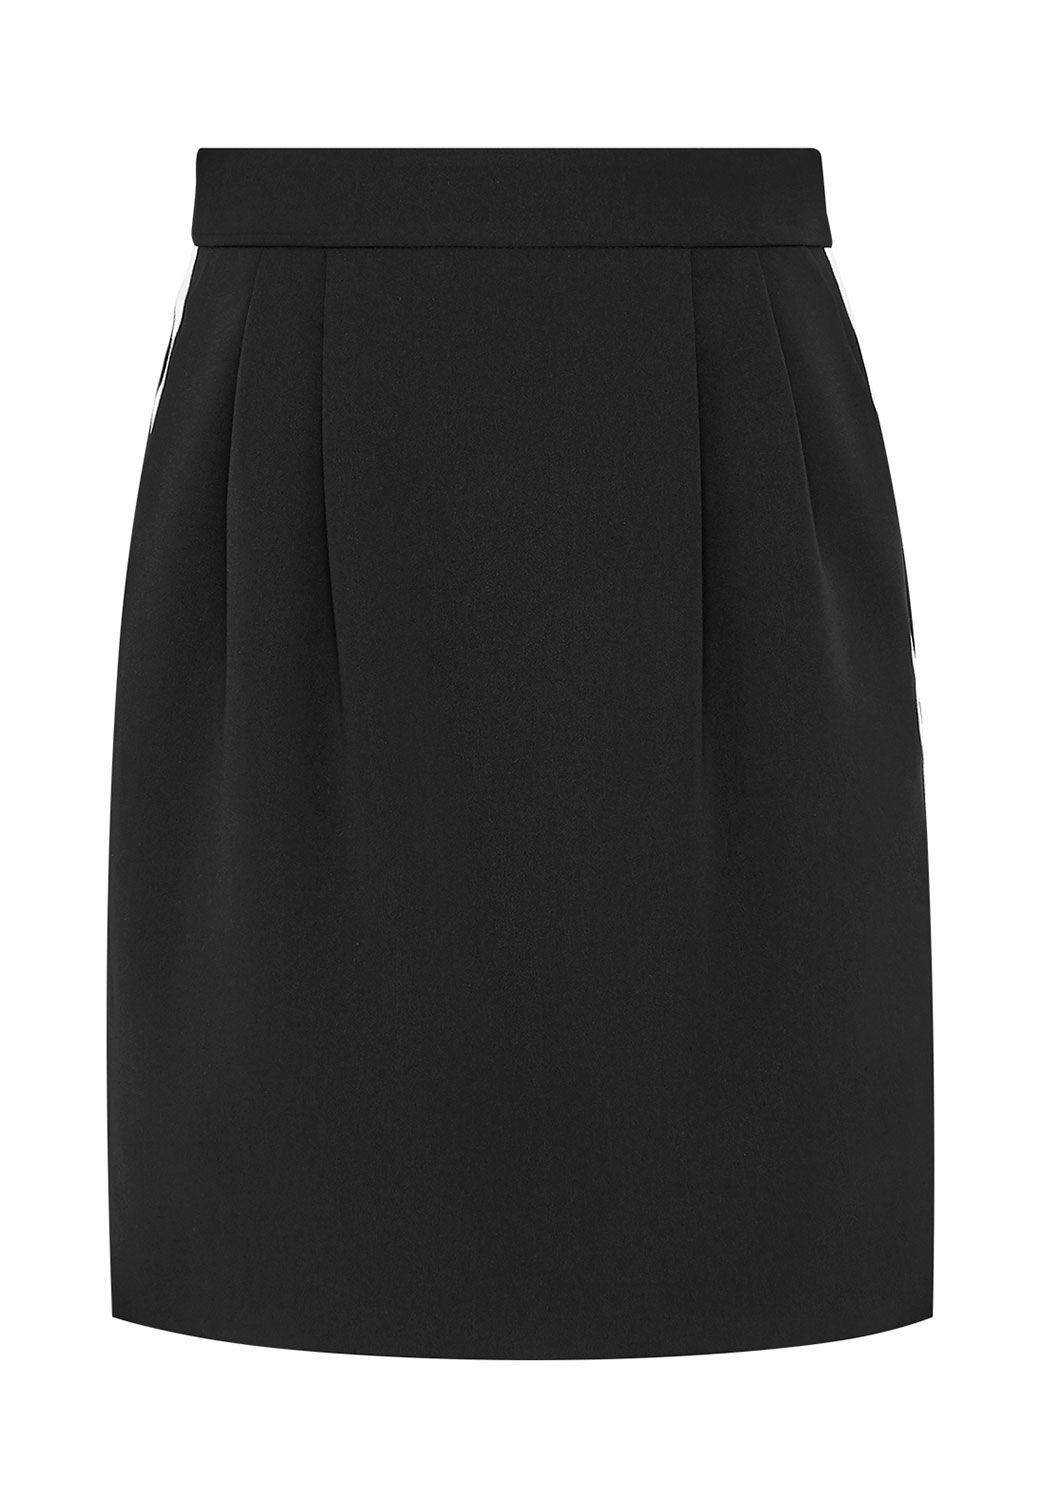 Hallhuber Bell Skirt With Track Stripes, Black